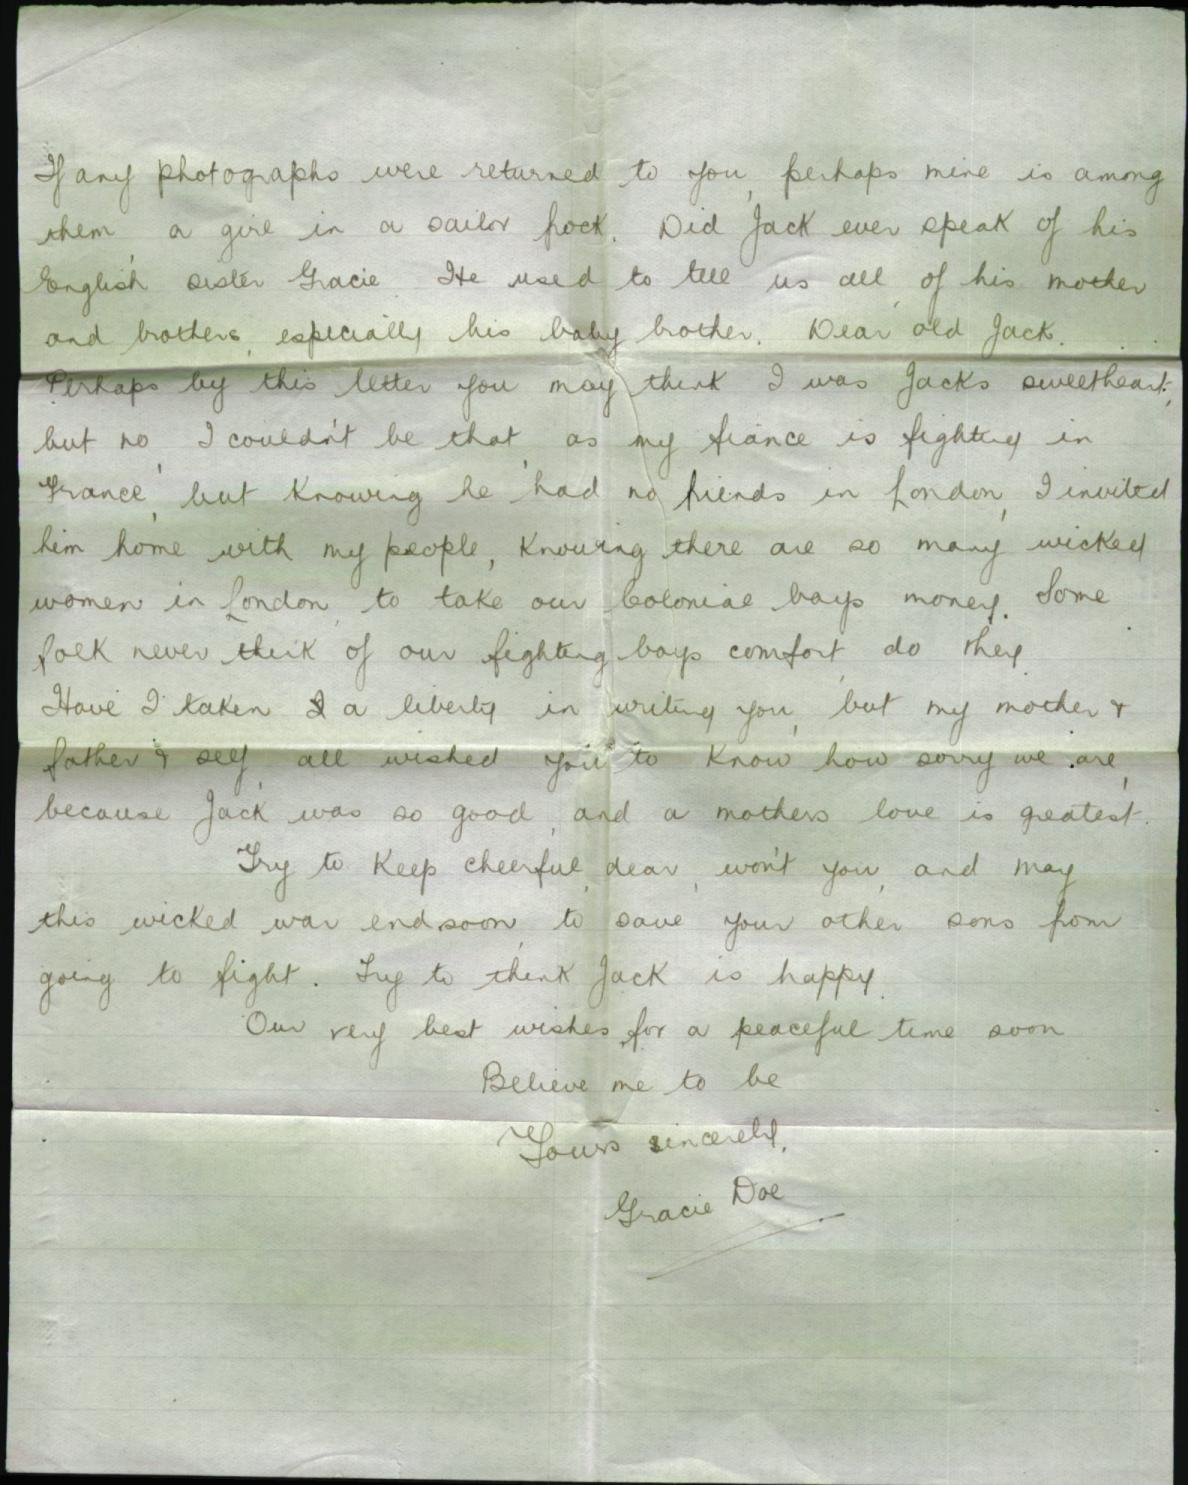 Page 2 Letter from Gracie Doe to Mrs. Bella Egan